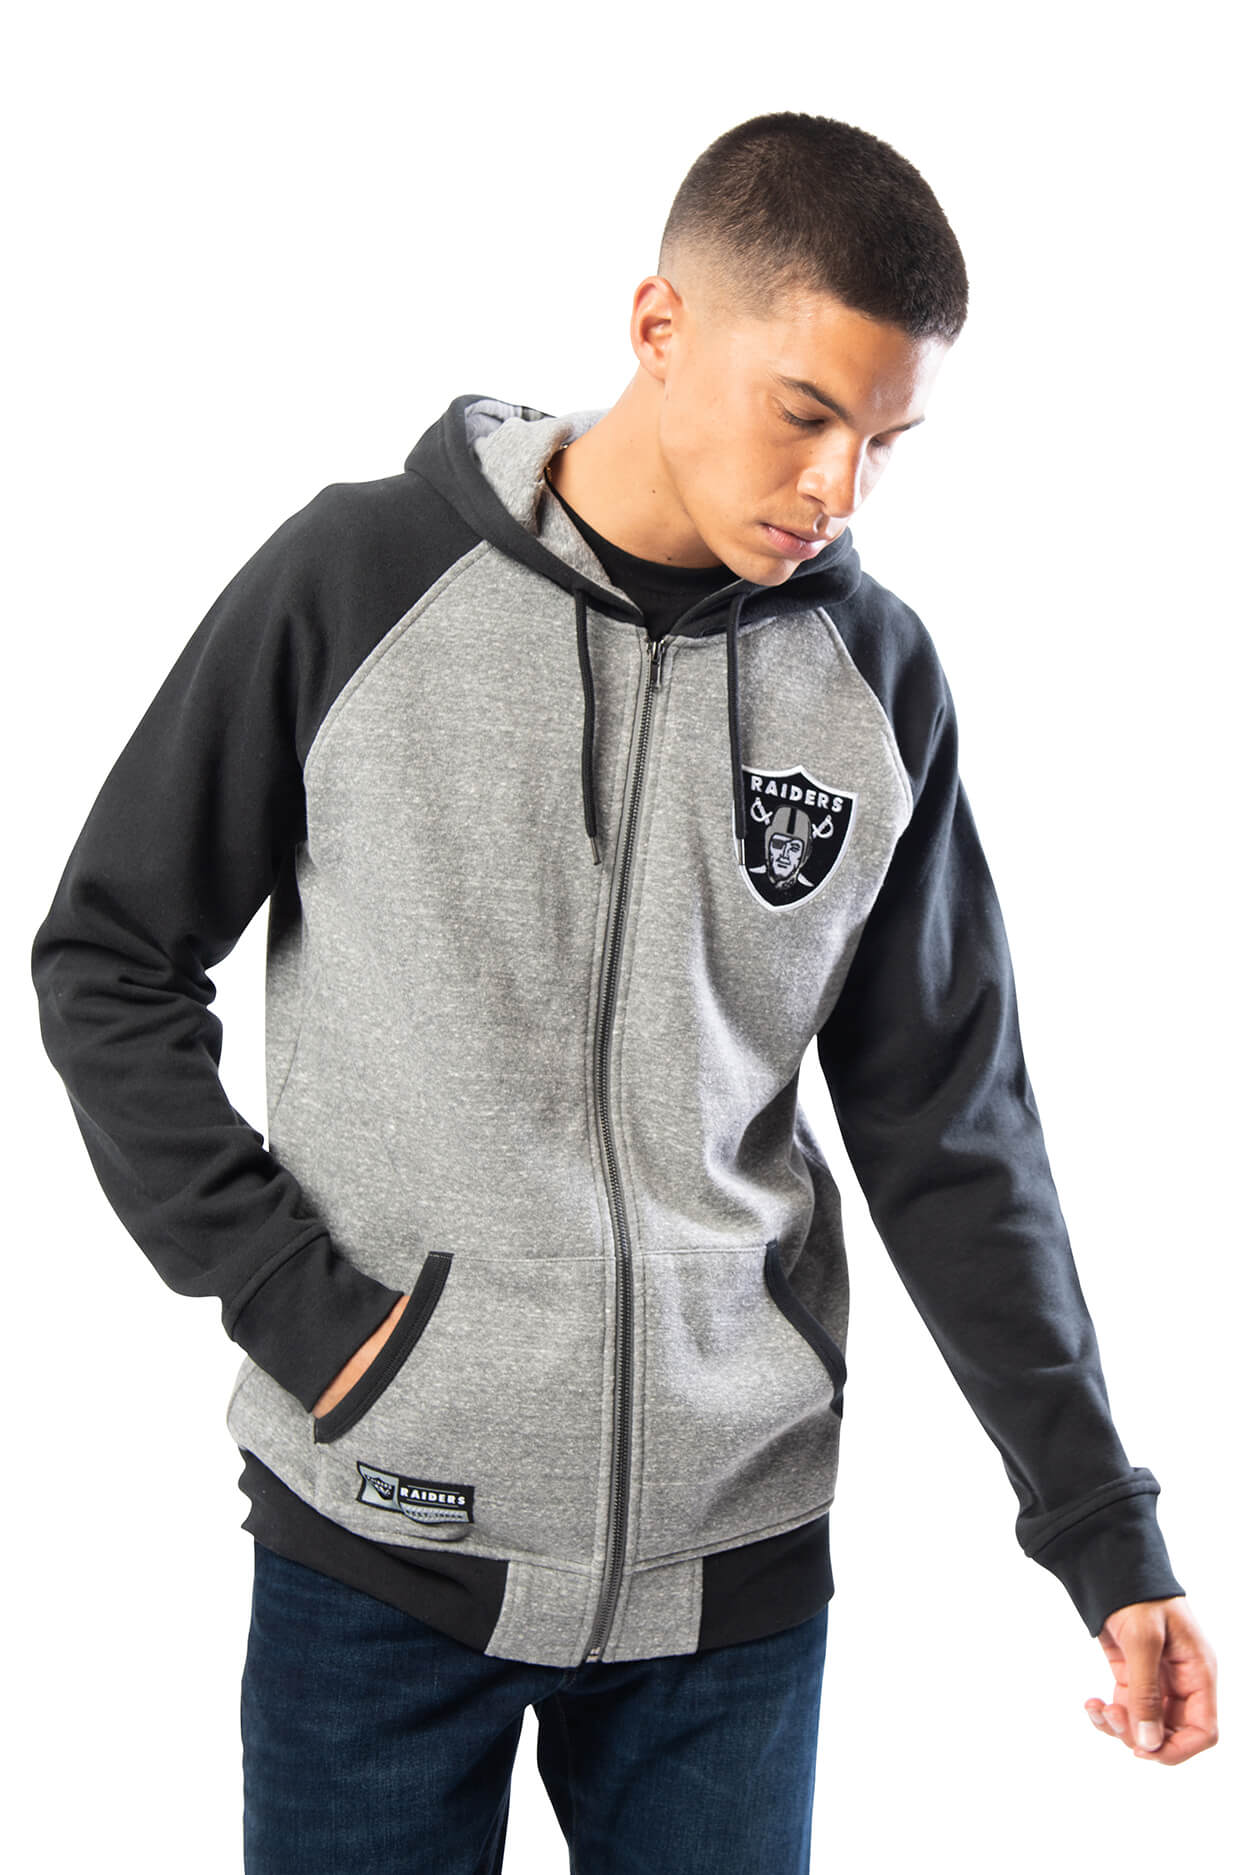 NFL Oakland Raiders Men's Full Zip Hoodie|Oakland Raiders